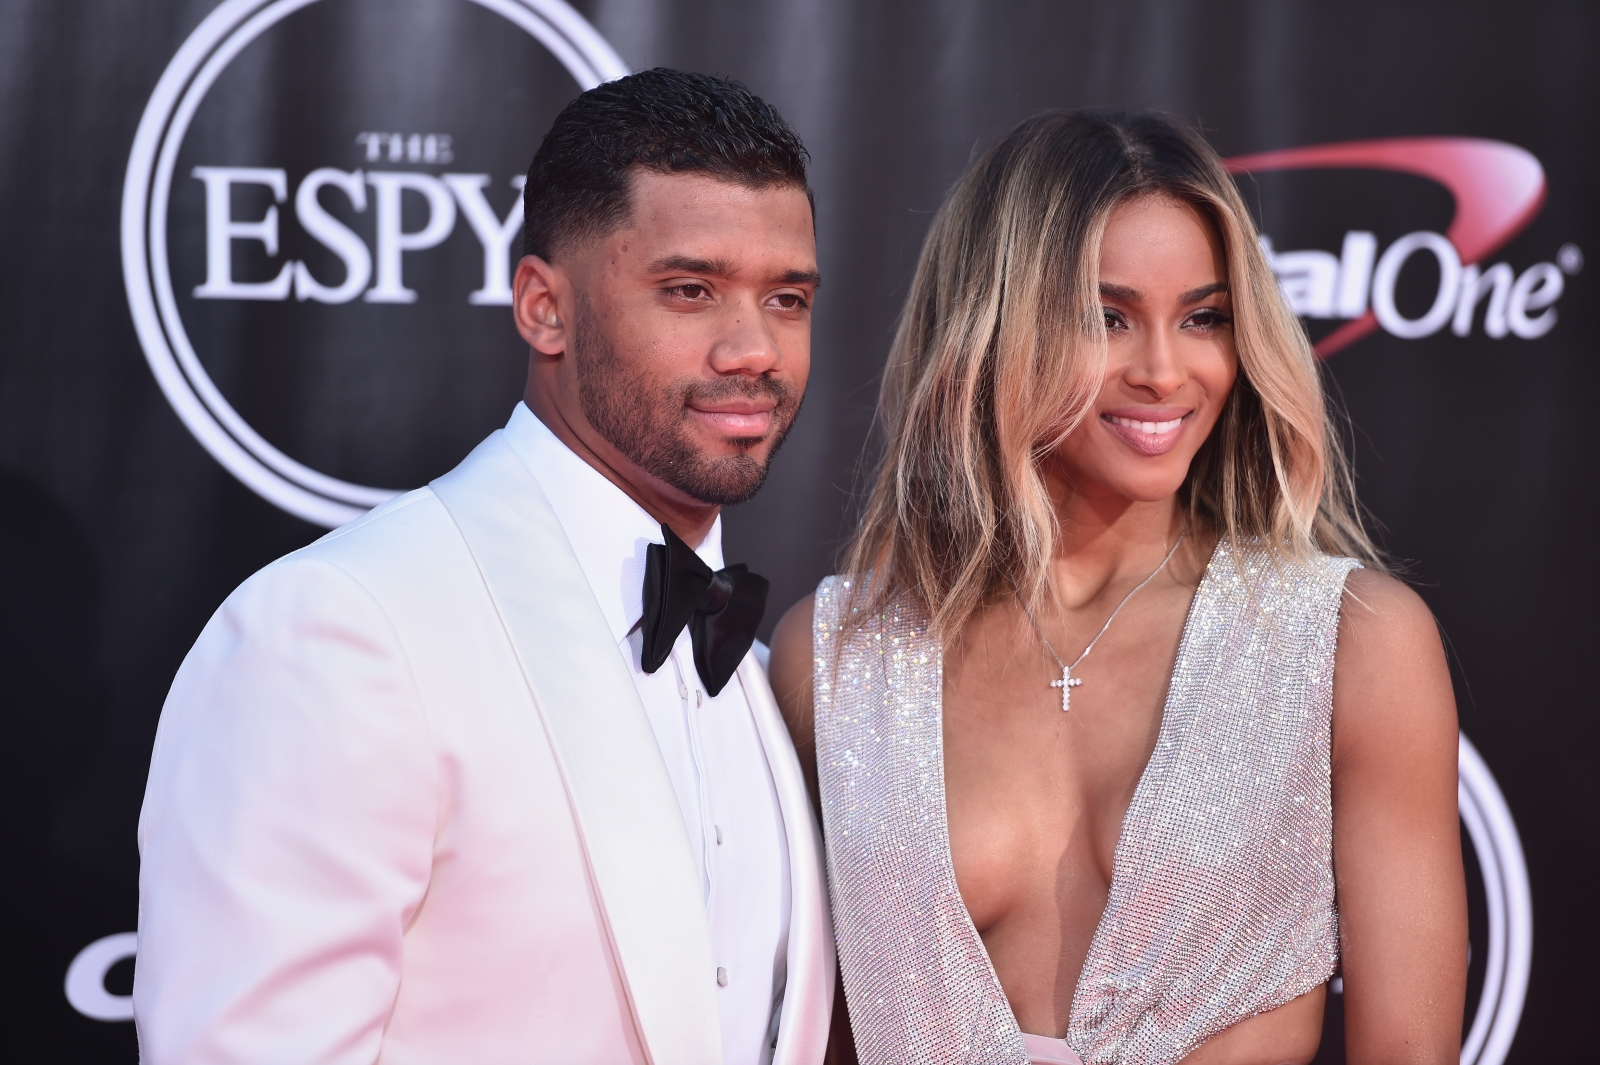 Russell Wilson and wife Ciara